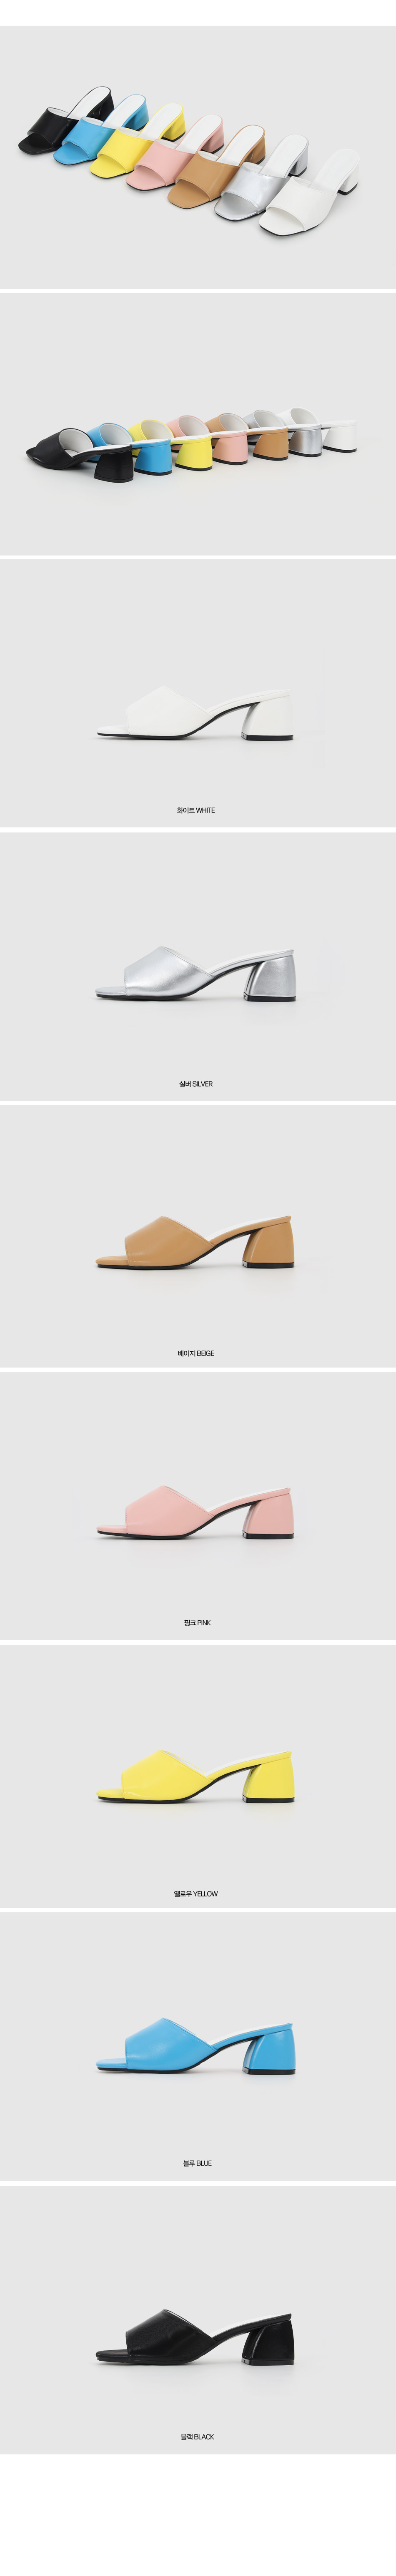 Isshu 7color arched block heel middle heel heel slipper mules sandals 2506 ♡ 1st edition ♡